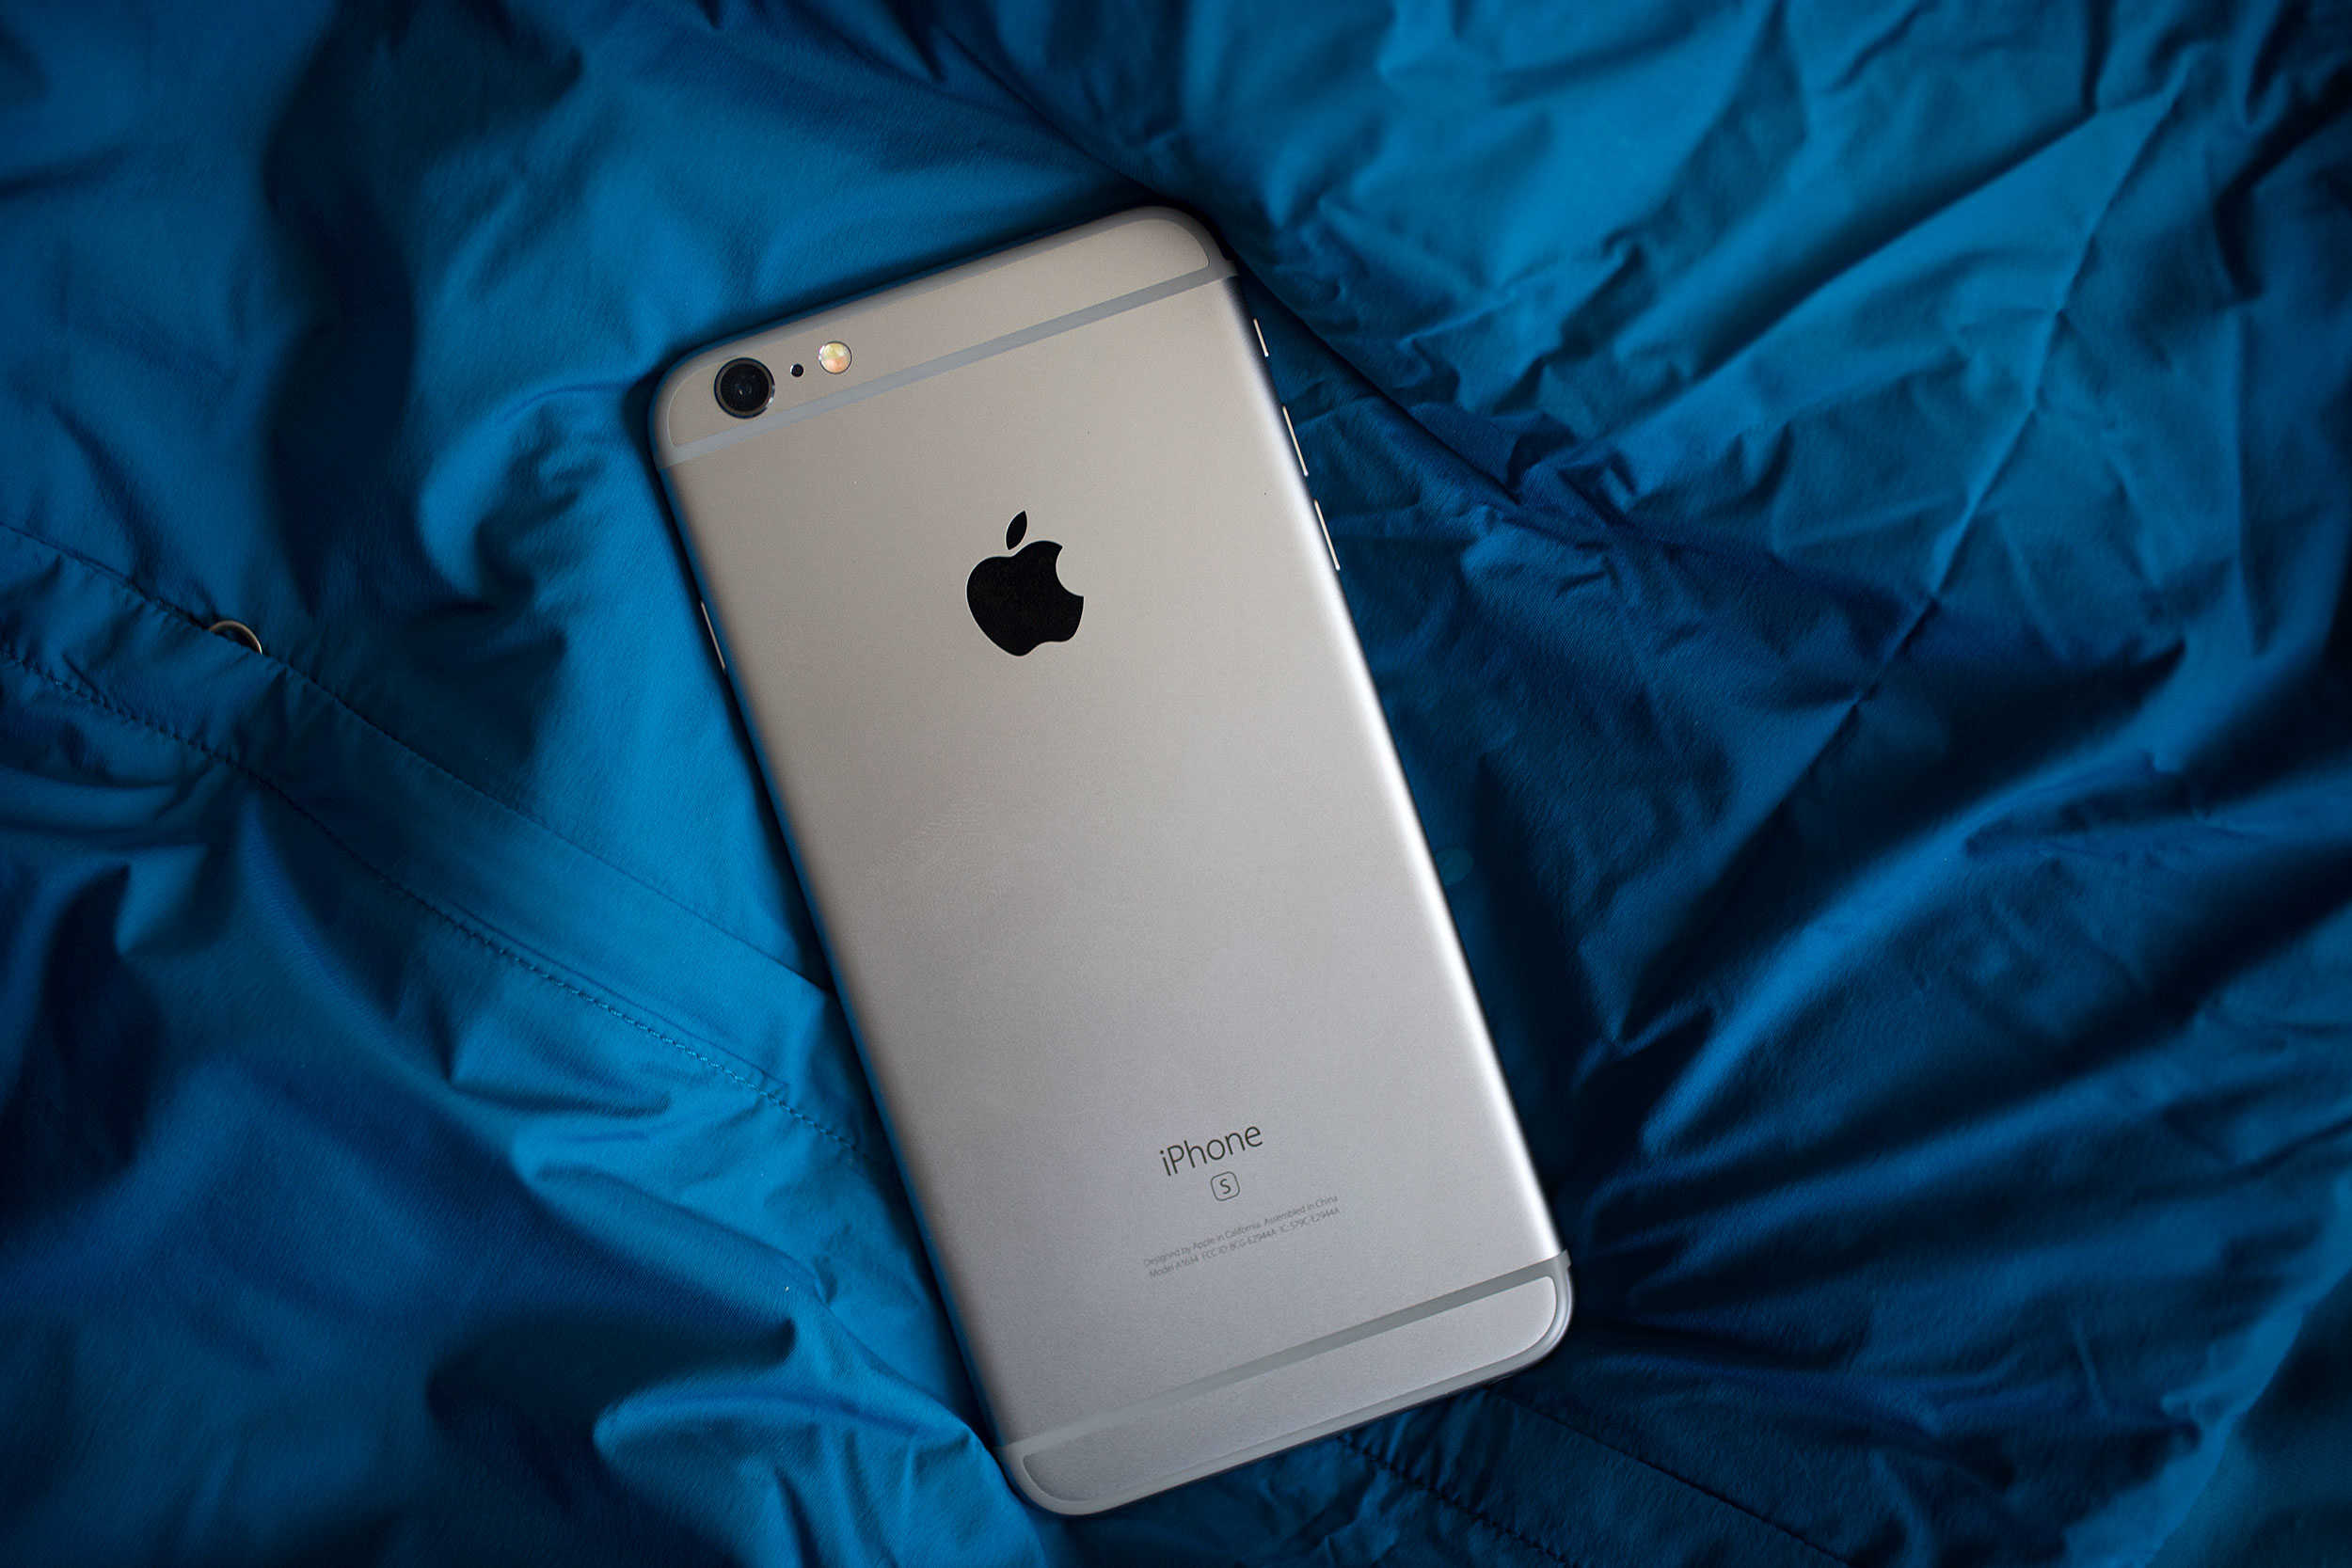 The iPhone 6s is Apple's best smartphone yet. But is it worth the upgrade?